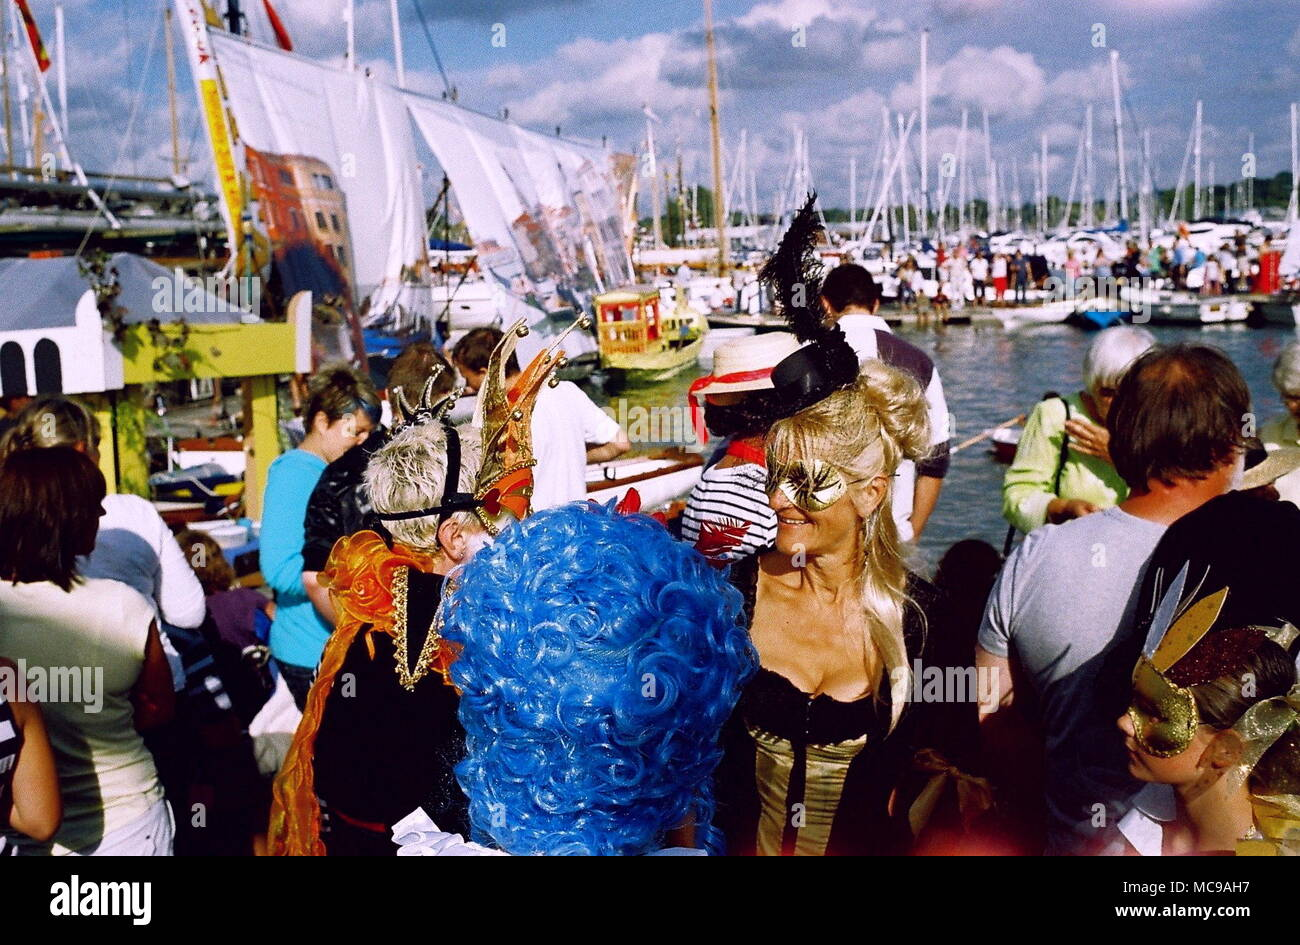 AJAXNETPHOTO. SEPTEMBER, 2011. BURSELDON, ENGLAND. - VENETIAN CARNIVAL THEME - RIVERSIDE SCENE AT THE ELEPHANT BOATYARD AS THE REGATTA GETS UNDER WAY. PHOTO:JONATHAN EASTLAND/AJAX REF:CD1542_24_1 - Stock Image